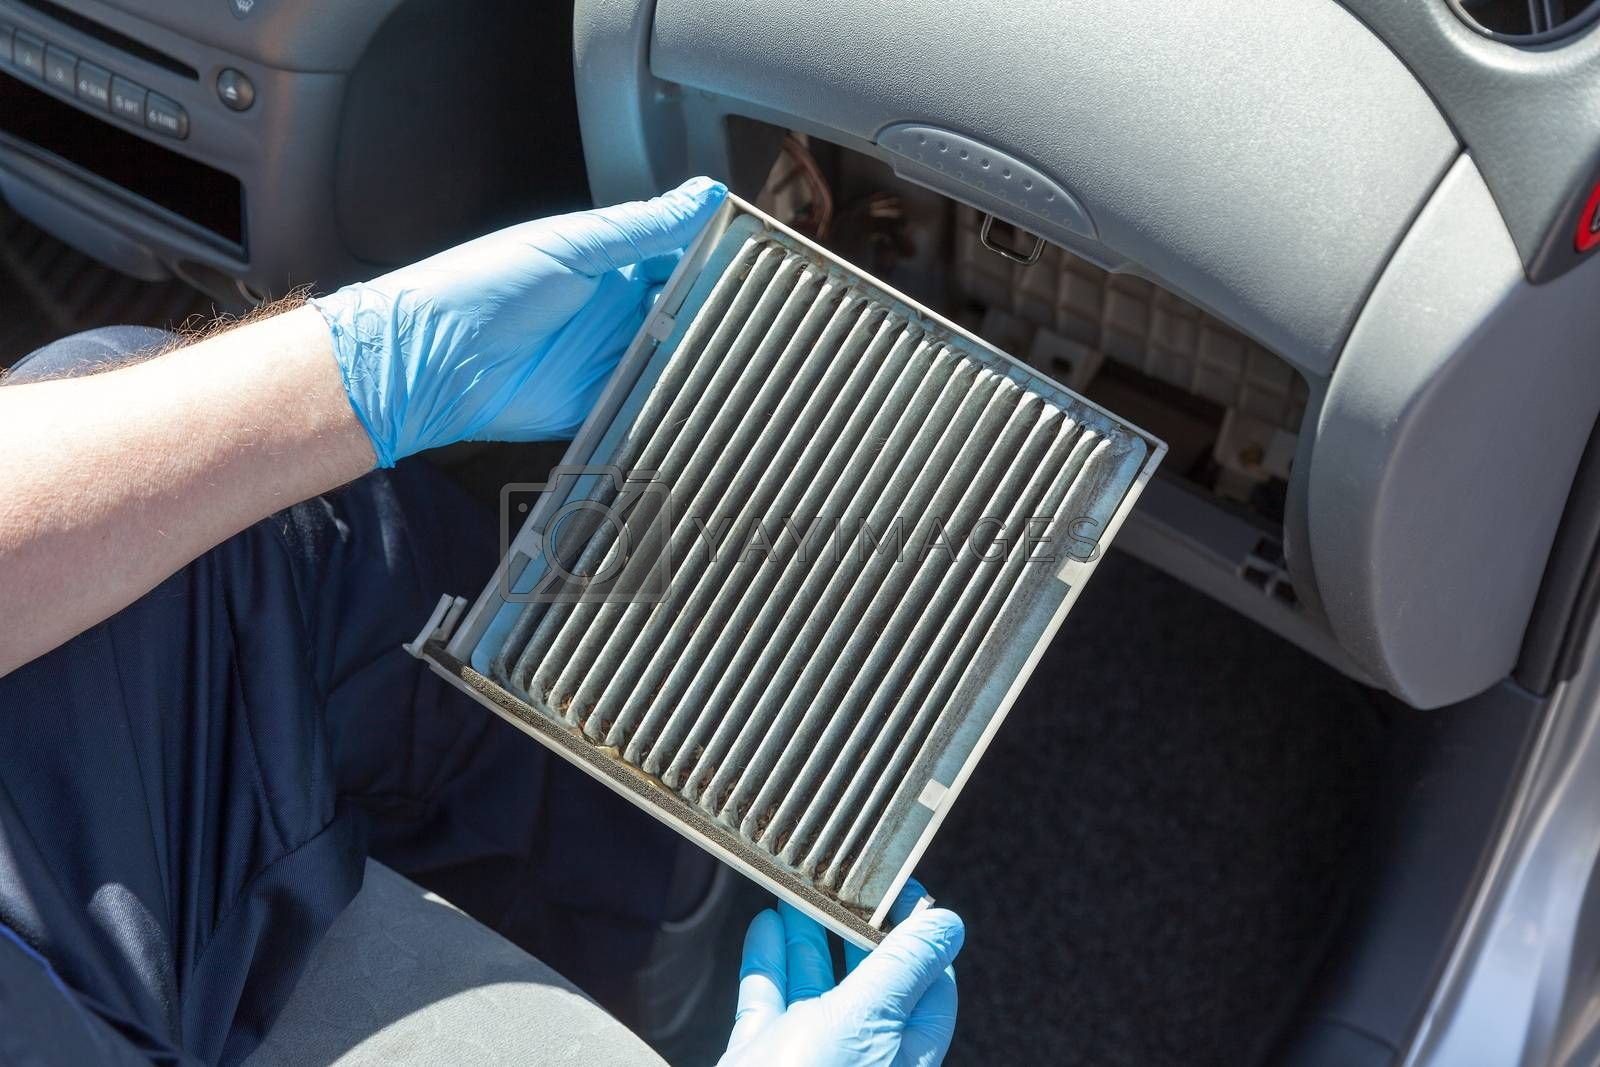 Replacing the old cabin air filter